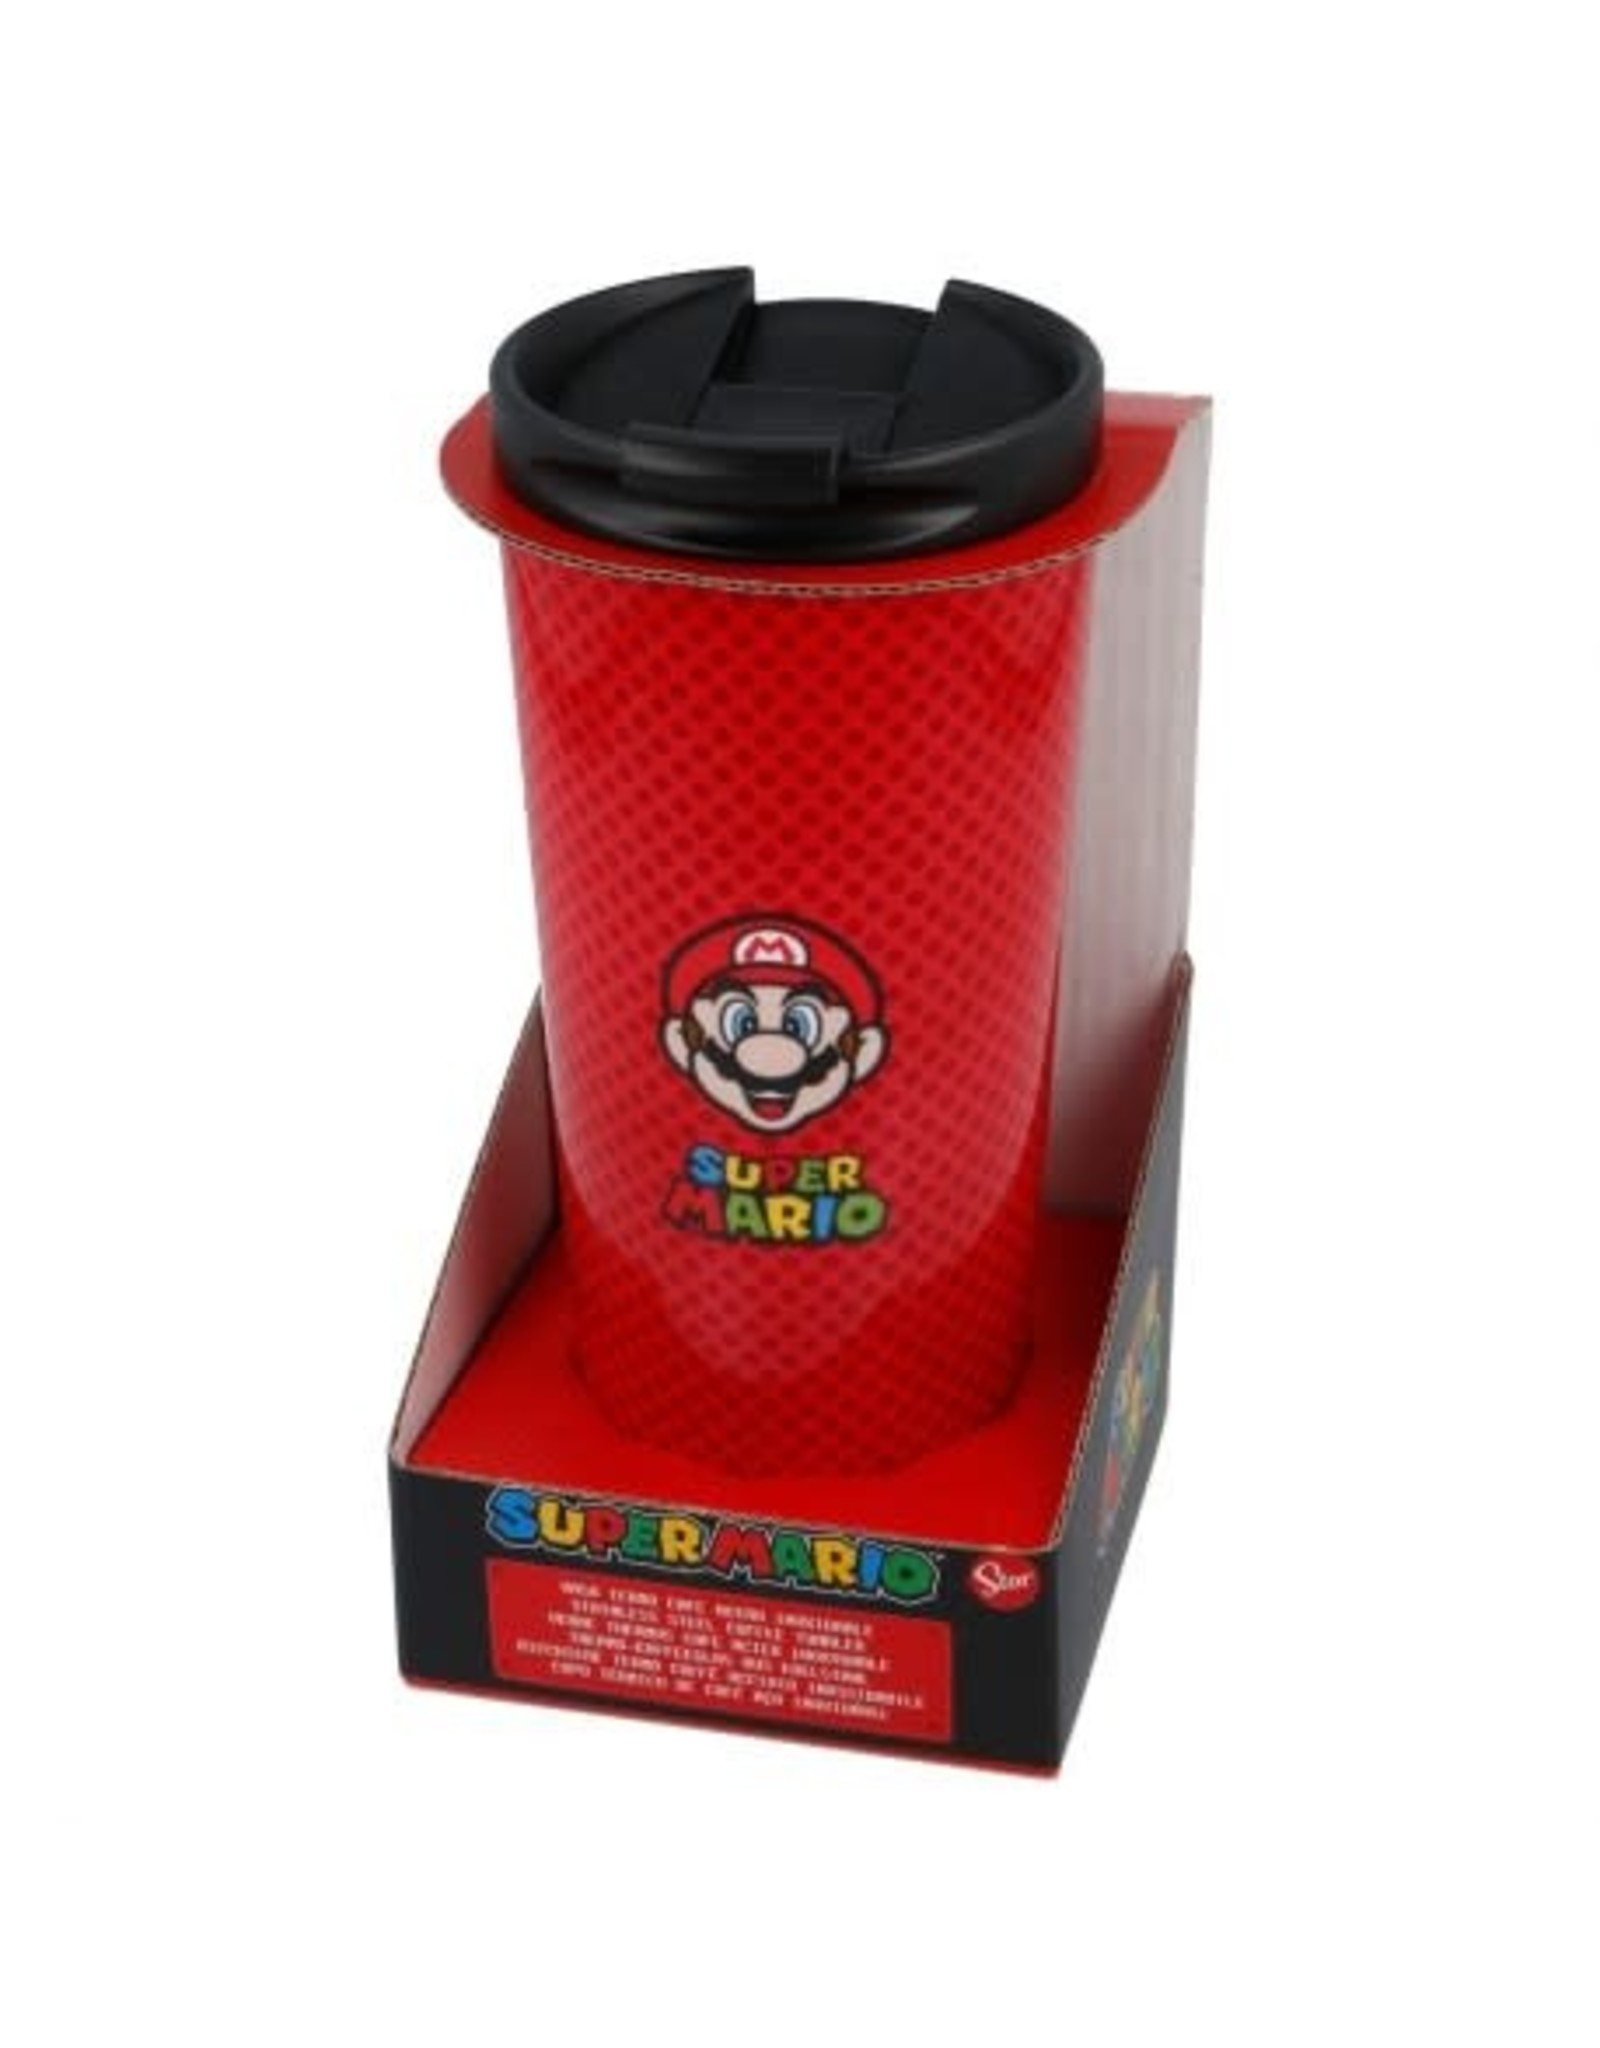 SUPER MARIO Stainless Steel Travel Mug 425ml